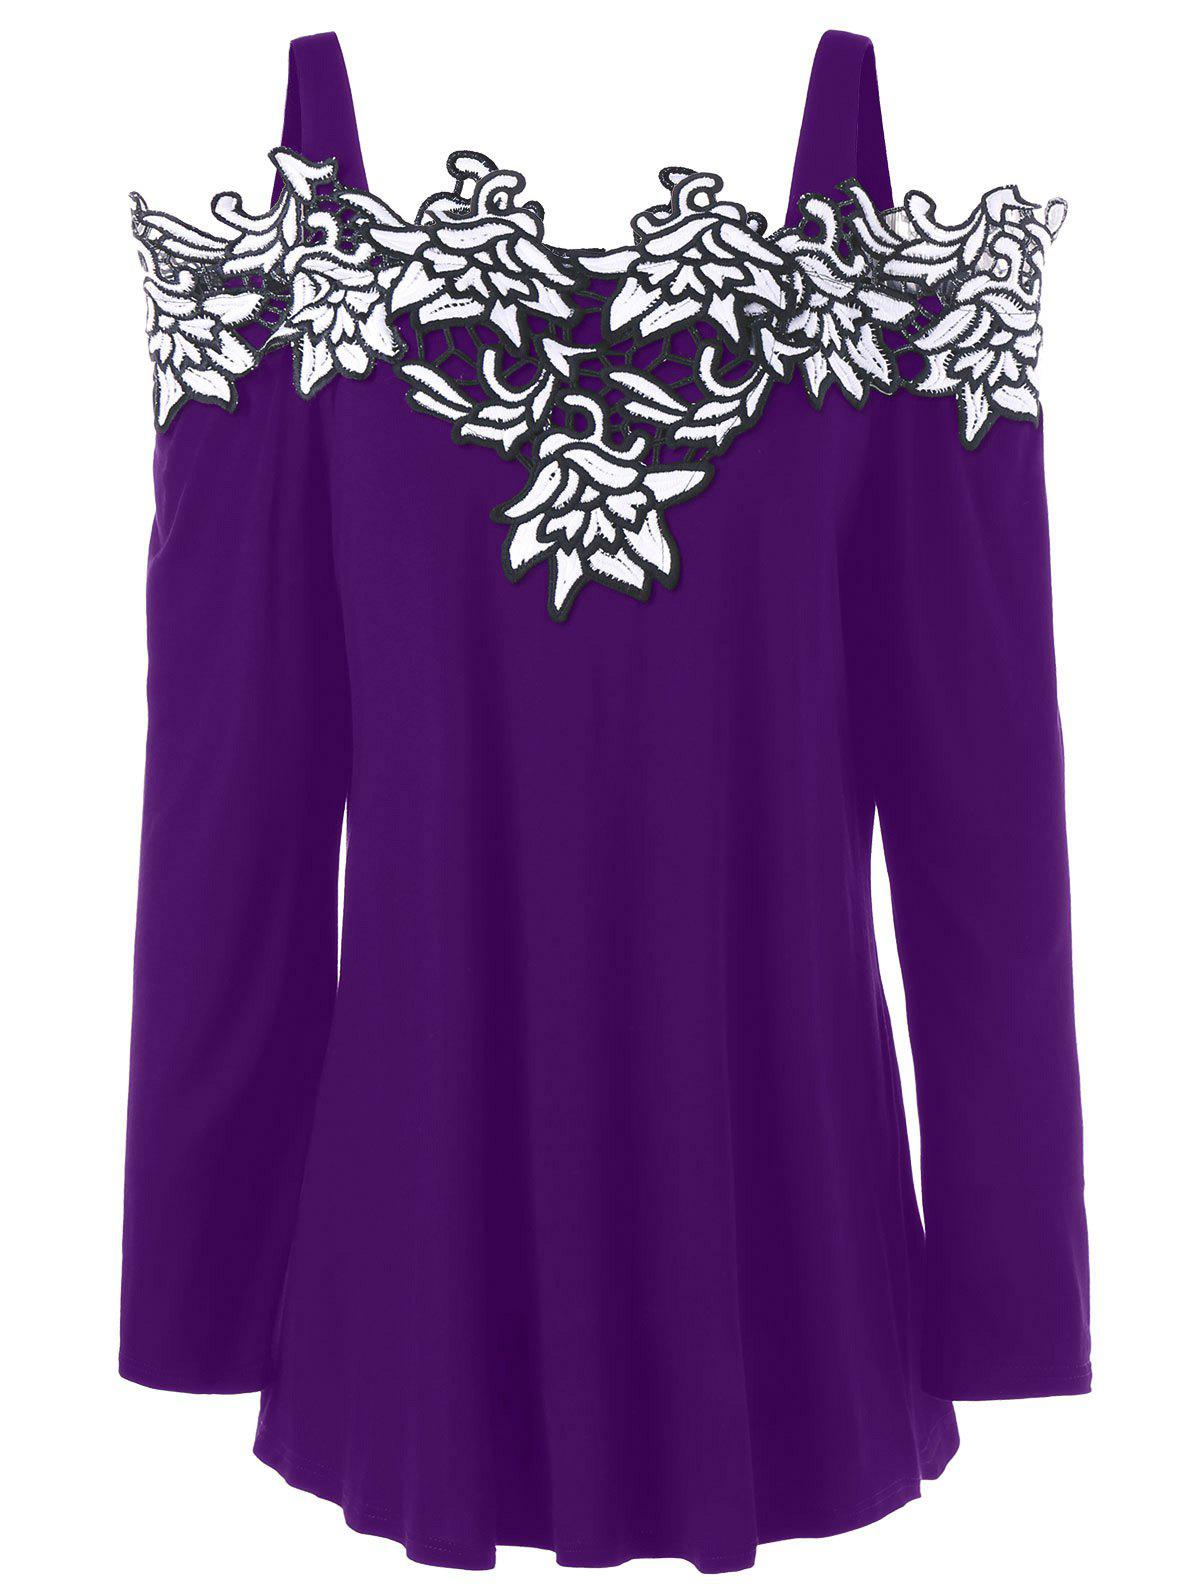 Plus Size Cold Shoulder Embroidered Long Sleeve T-shirtWOMEN<br><br>Size: 4XL; Color: PURPLE; Material: Cotton,Polyester; Shirt Length: Regular; Sleeve Length: Full; Collar: Spaghetti Strap; Style: Fashion; Season: Fall,Spring; Embellishment: Embroidery; Pattern Type: Floral; Weight: 0.3000kg; Package Contents: 1 x T-shirt;